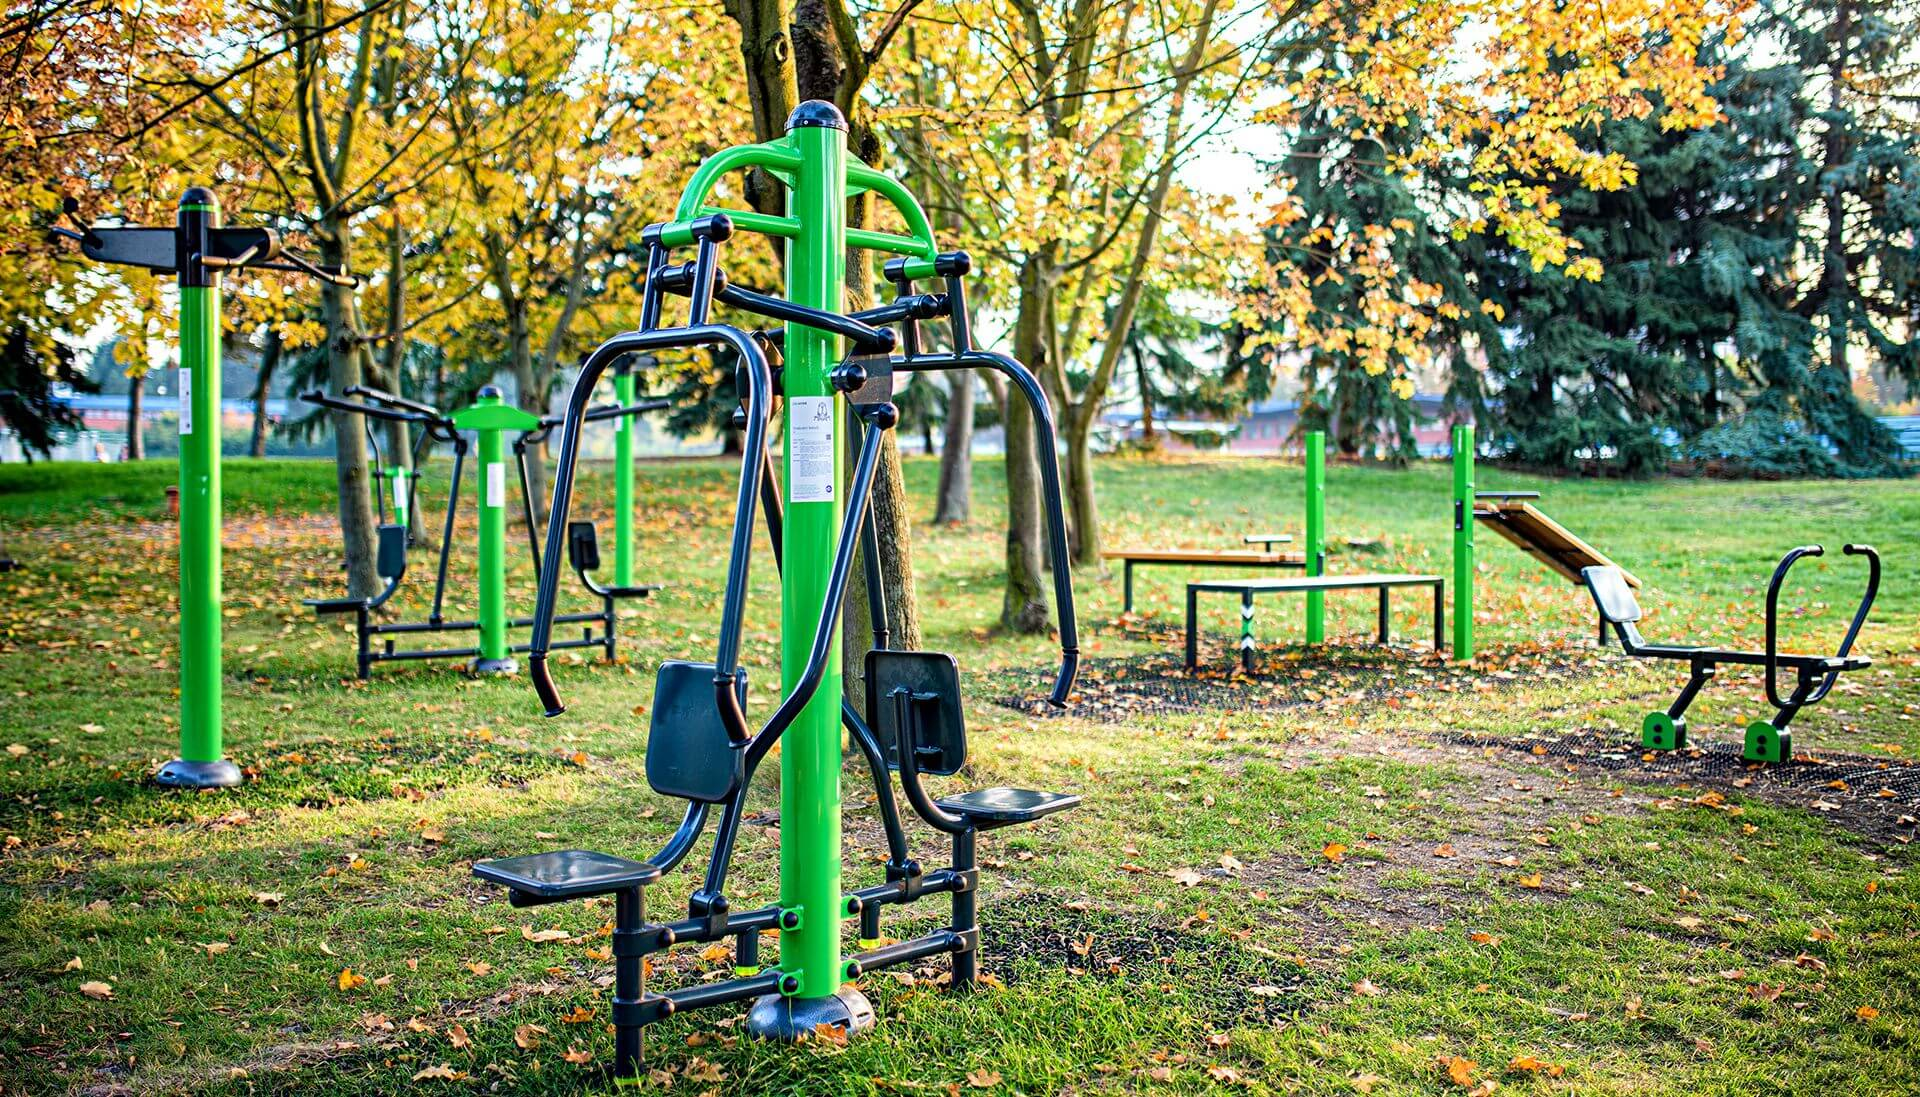 Green Outdoor Gym